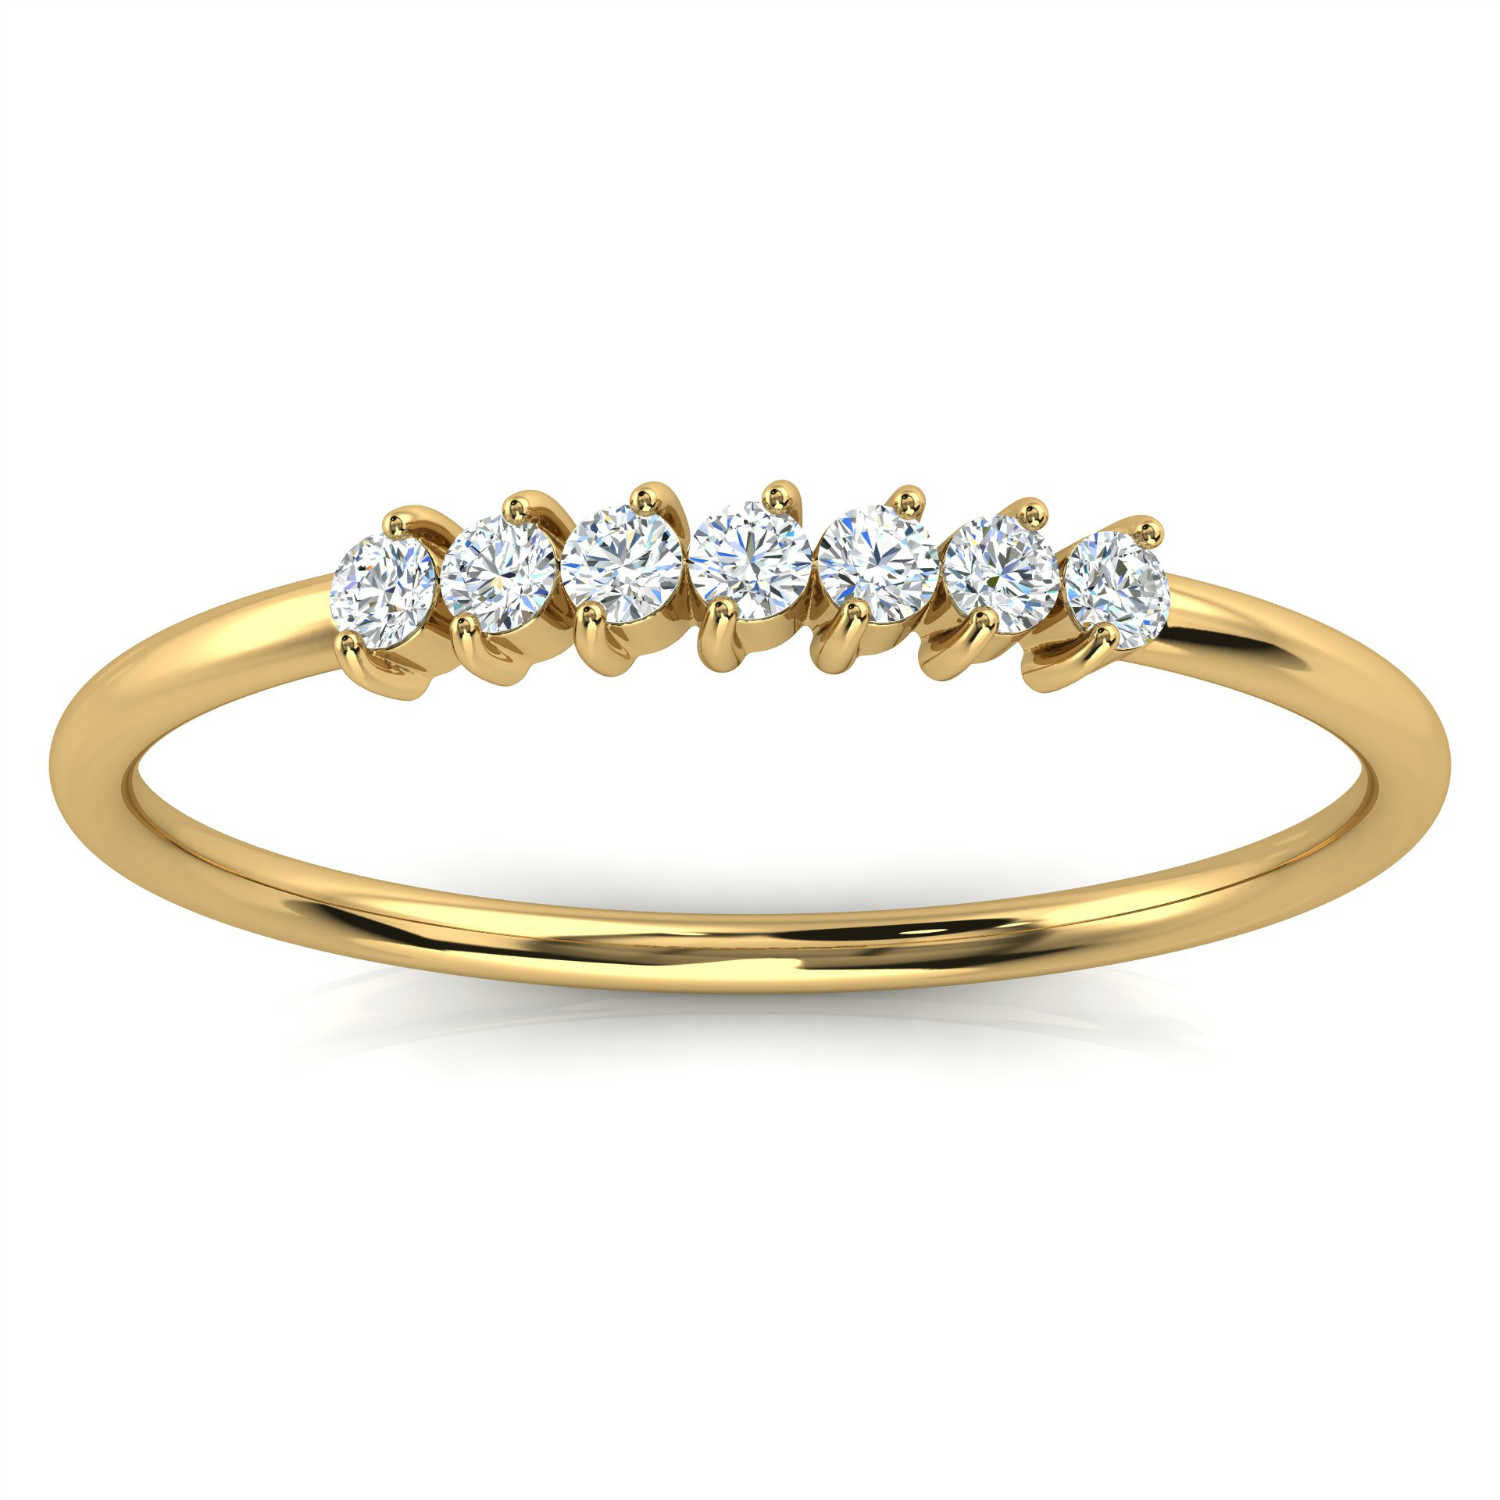 14K Yellow Gold Shelby Minimalist Organic Design Diamond Ring (1/10 ct. tw)